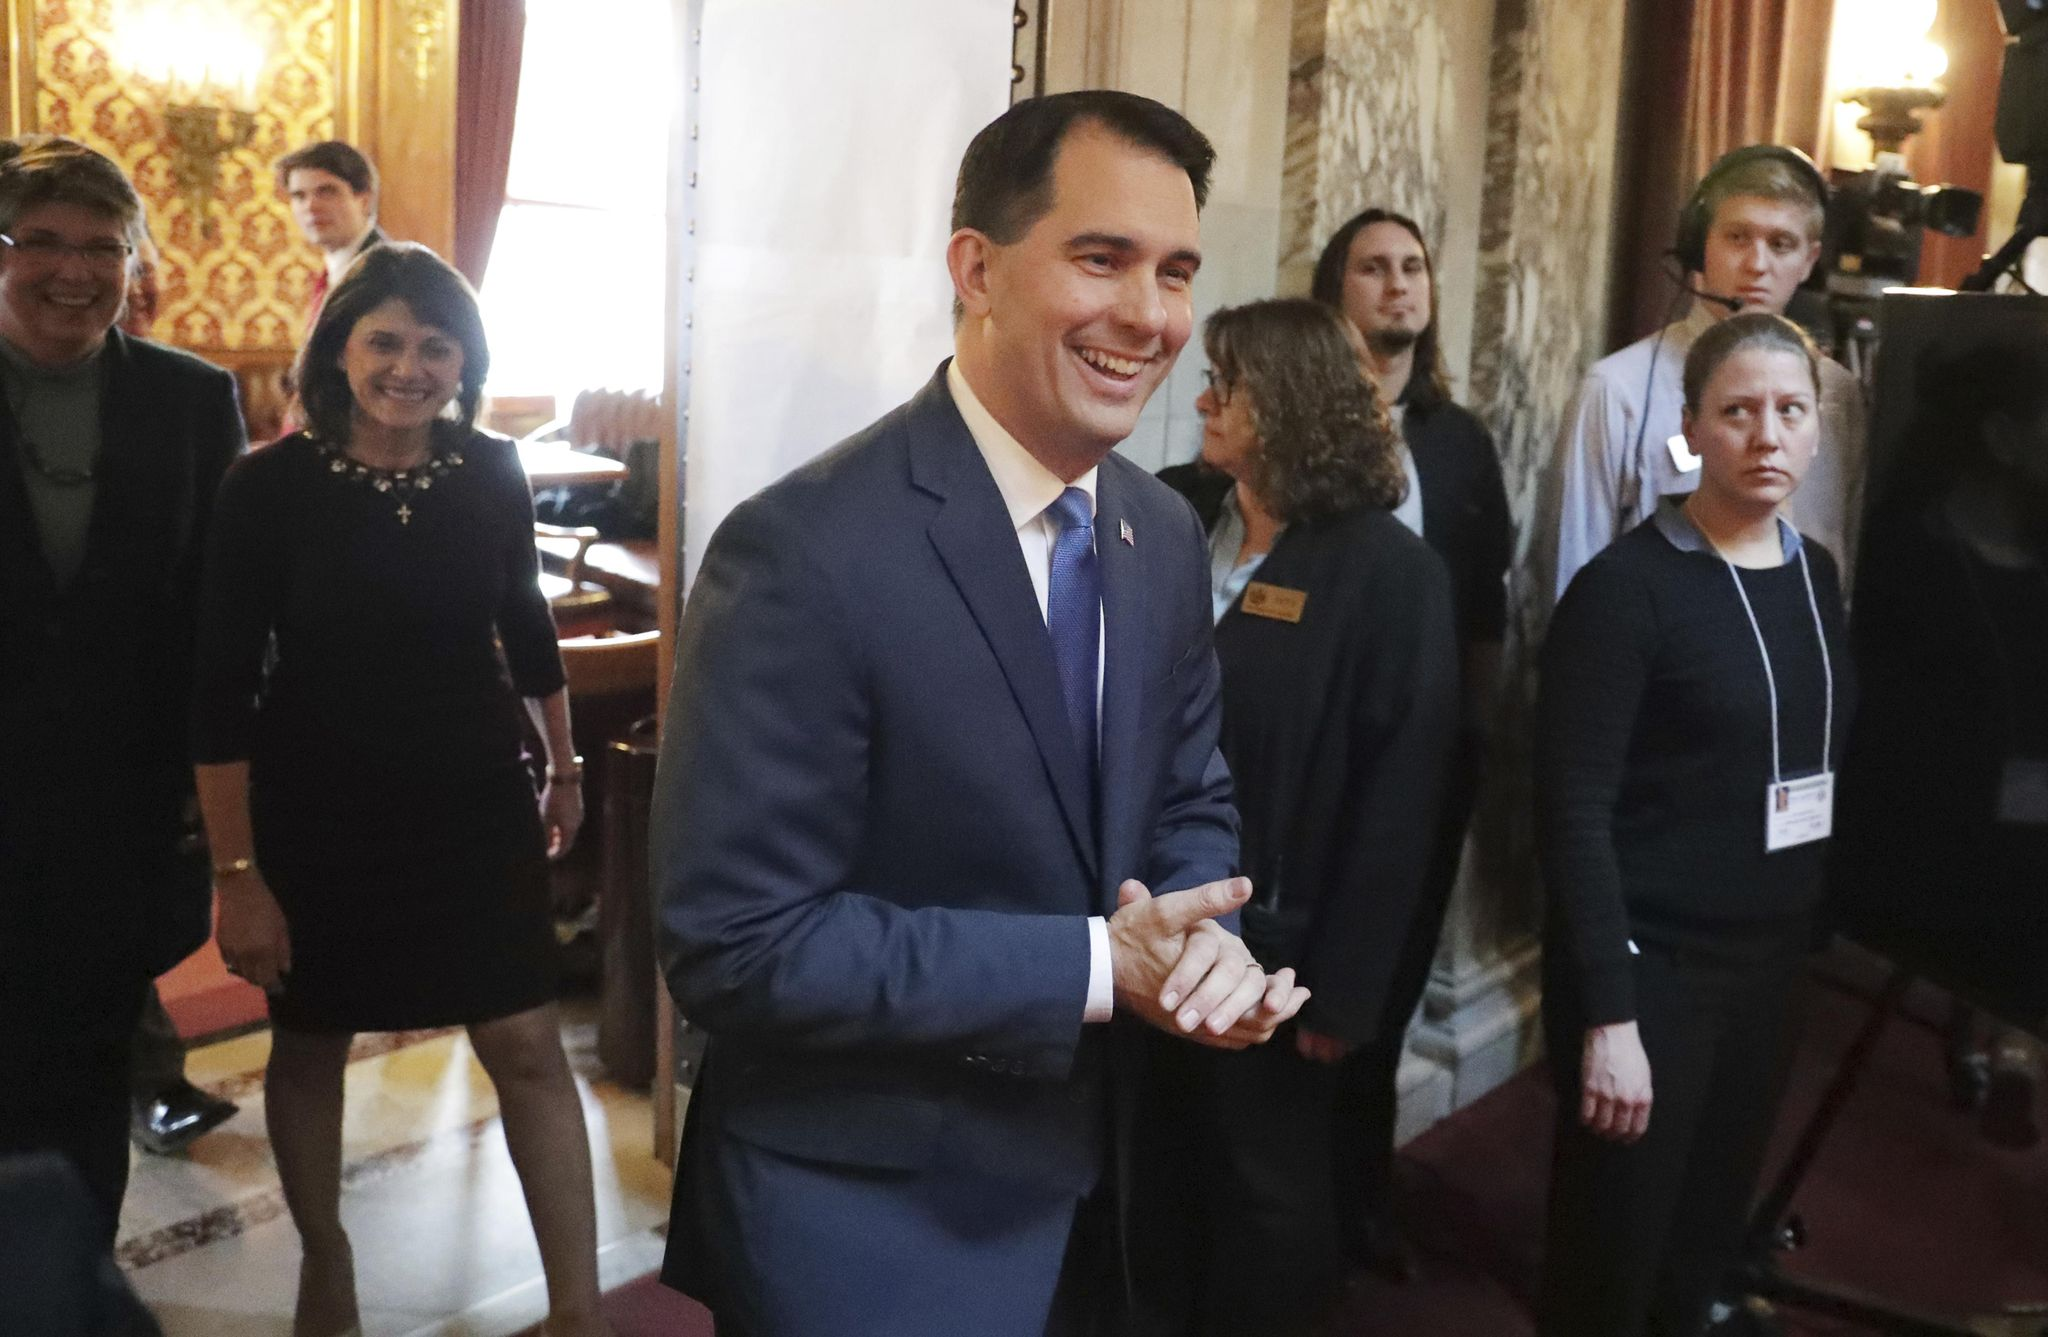 Scott Walker releases third ad in three weeks highlighting job training, manufacturing